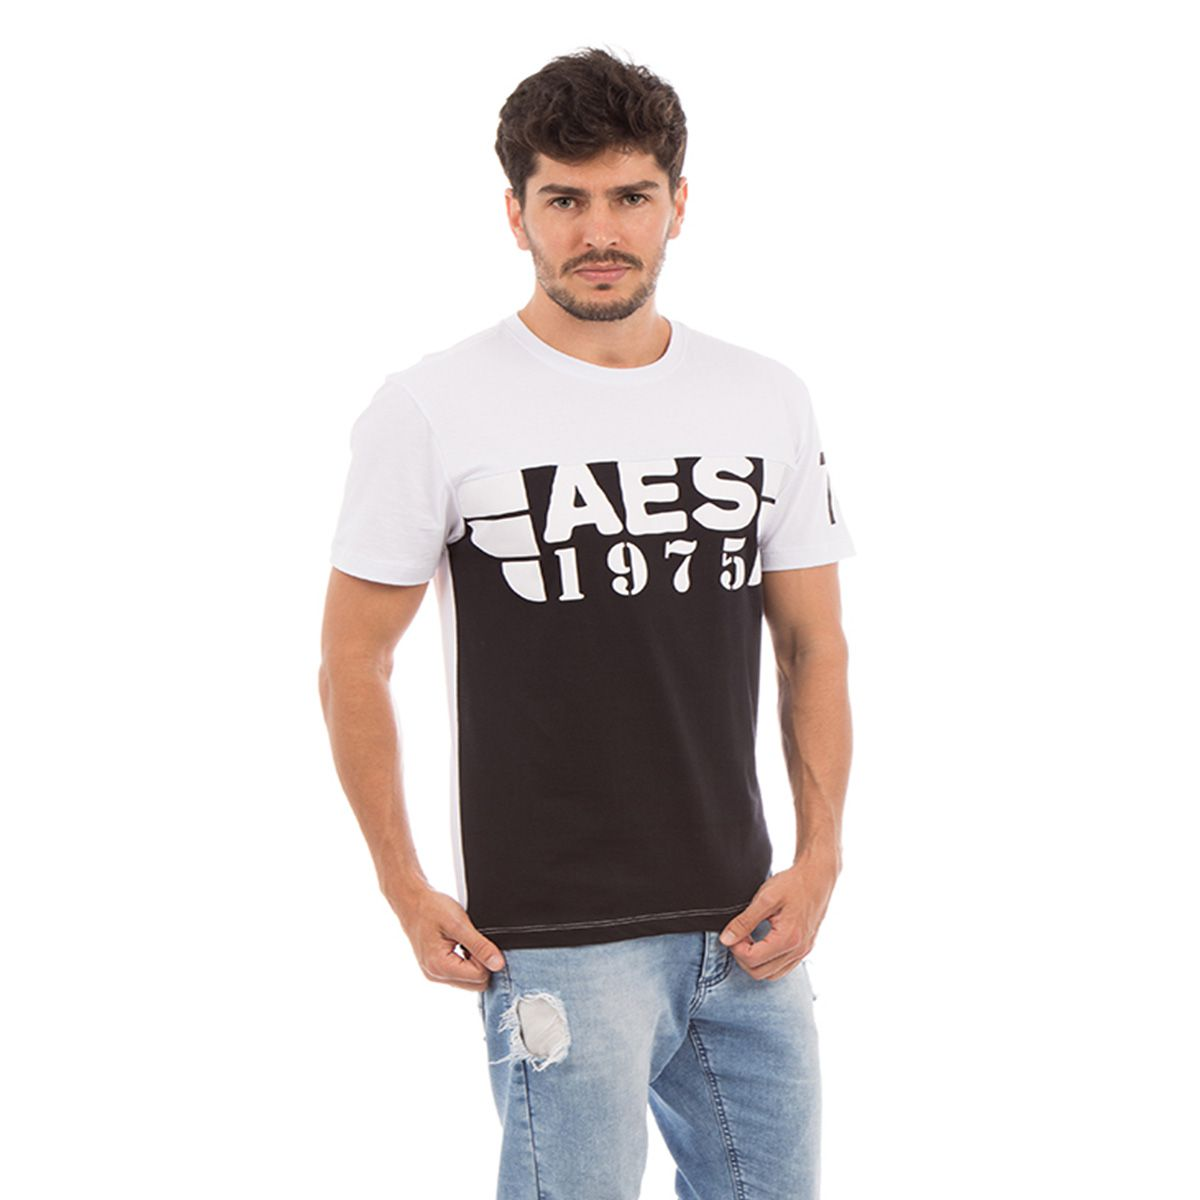 Camiseta AES 1975 Black & White